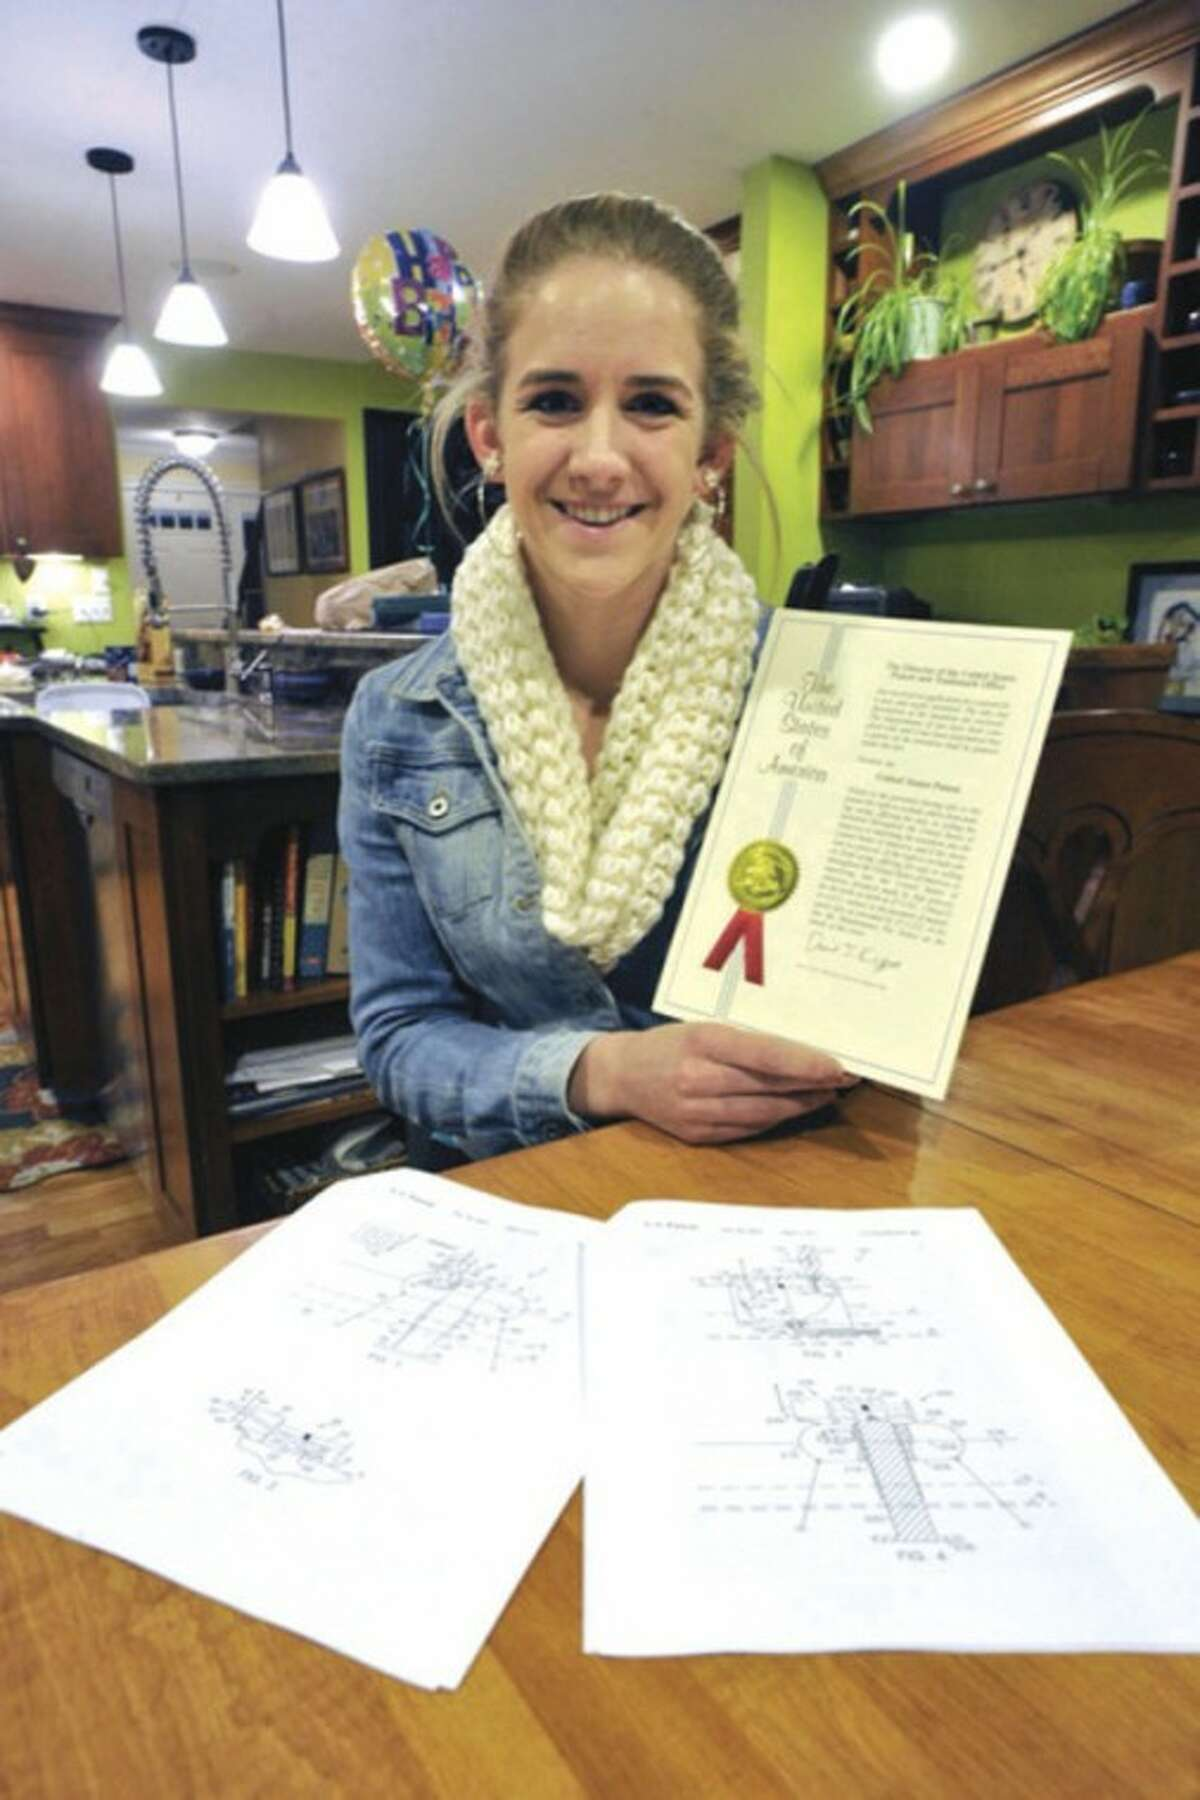 AP file photo / The News-Times, Jason Rearick In this Nov. 29 photo, Newtown High School senior Zoe Eggleston holds her patent certificate for the Ice Device, a machine she invented that monitors ice thickness on bodies of water, in Newtown.